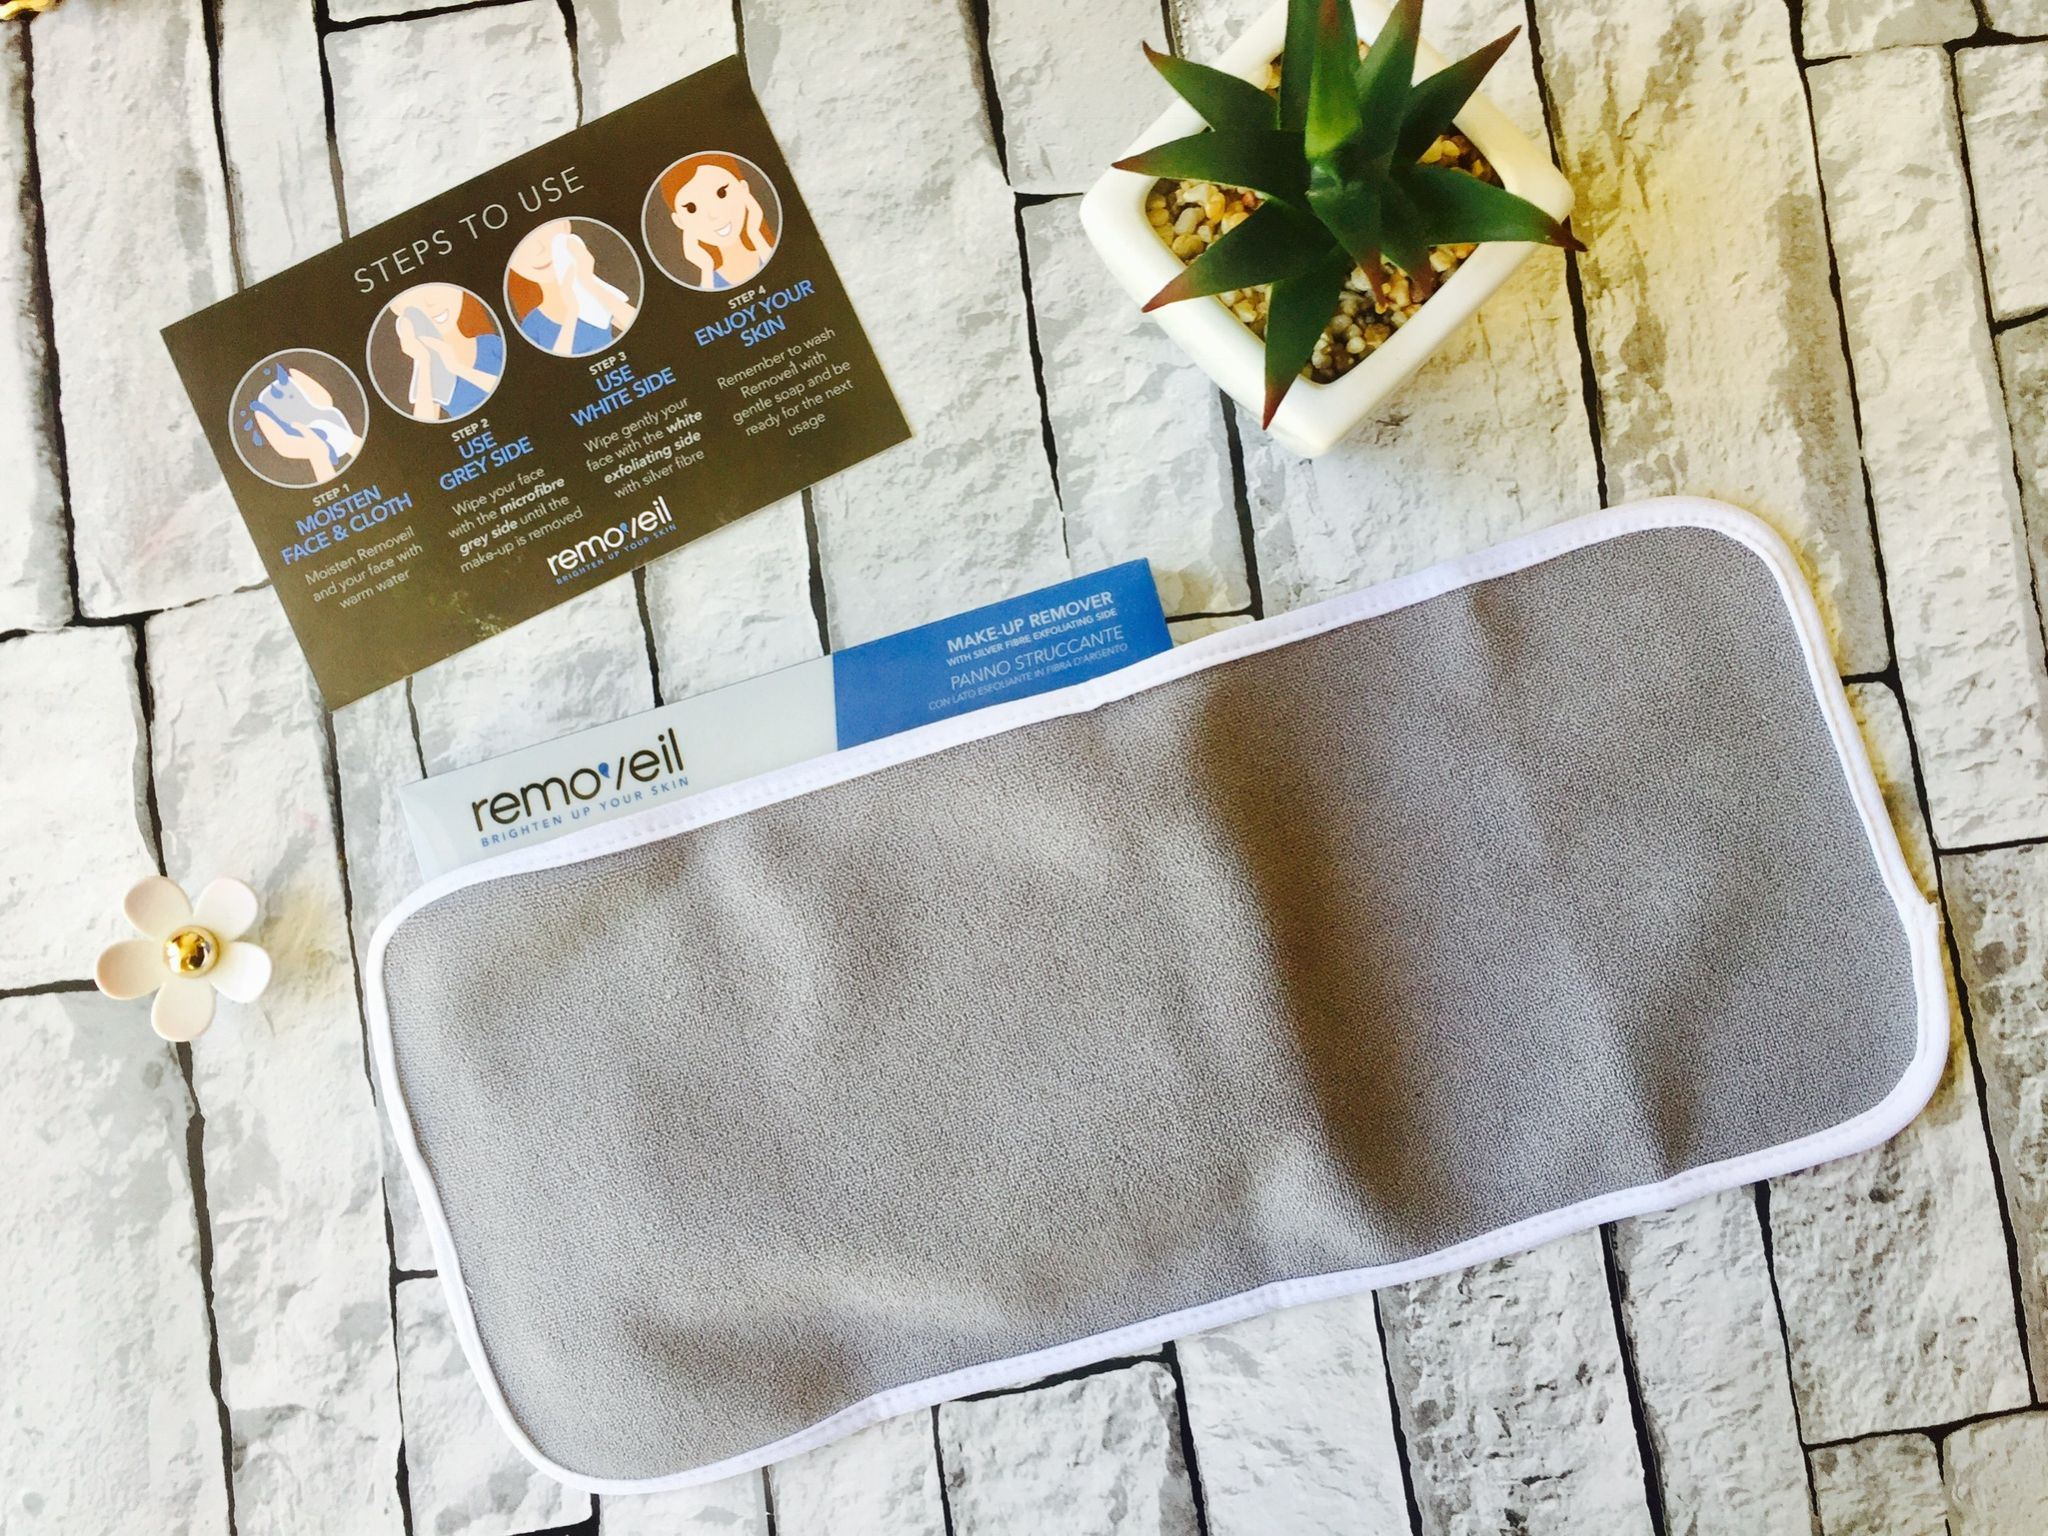 Removeil makeup cleaning cloth